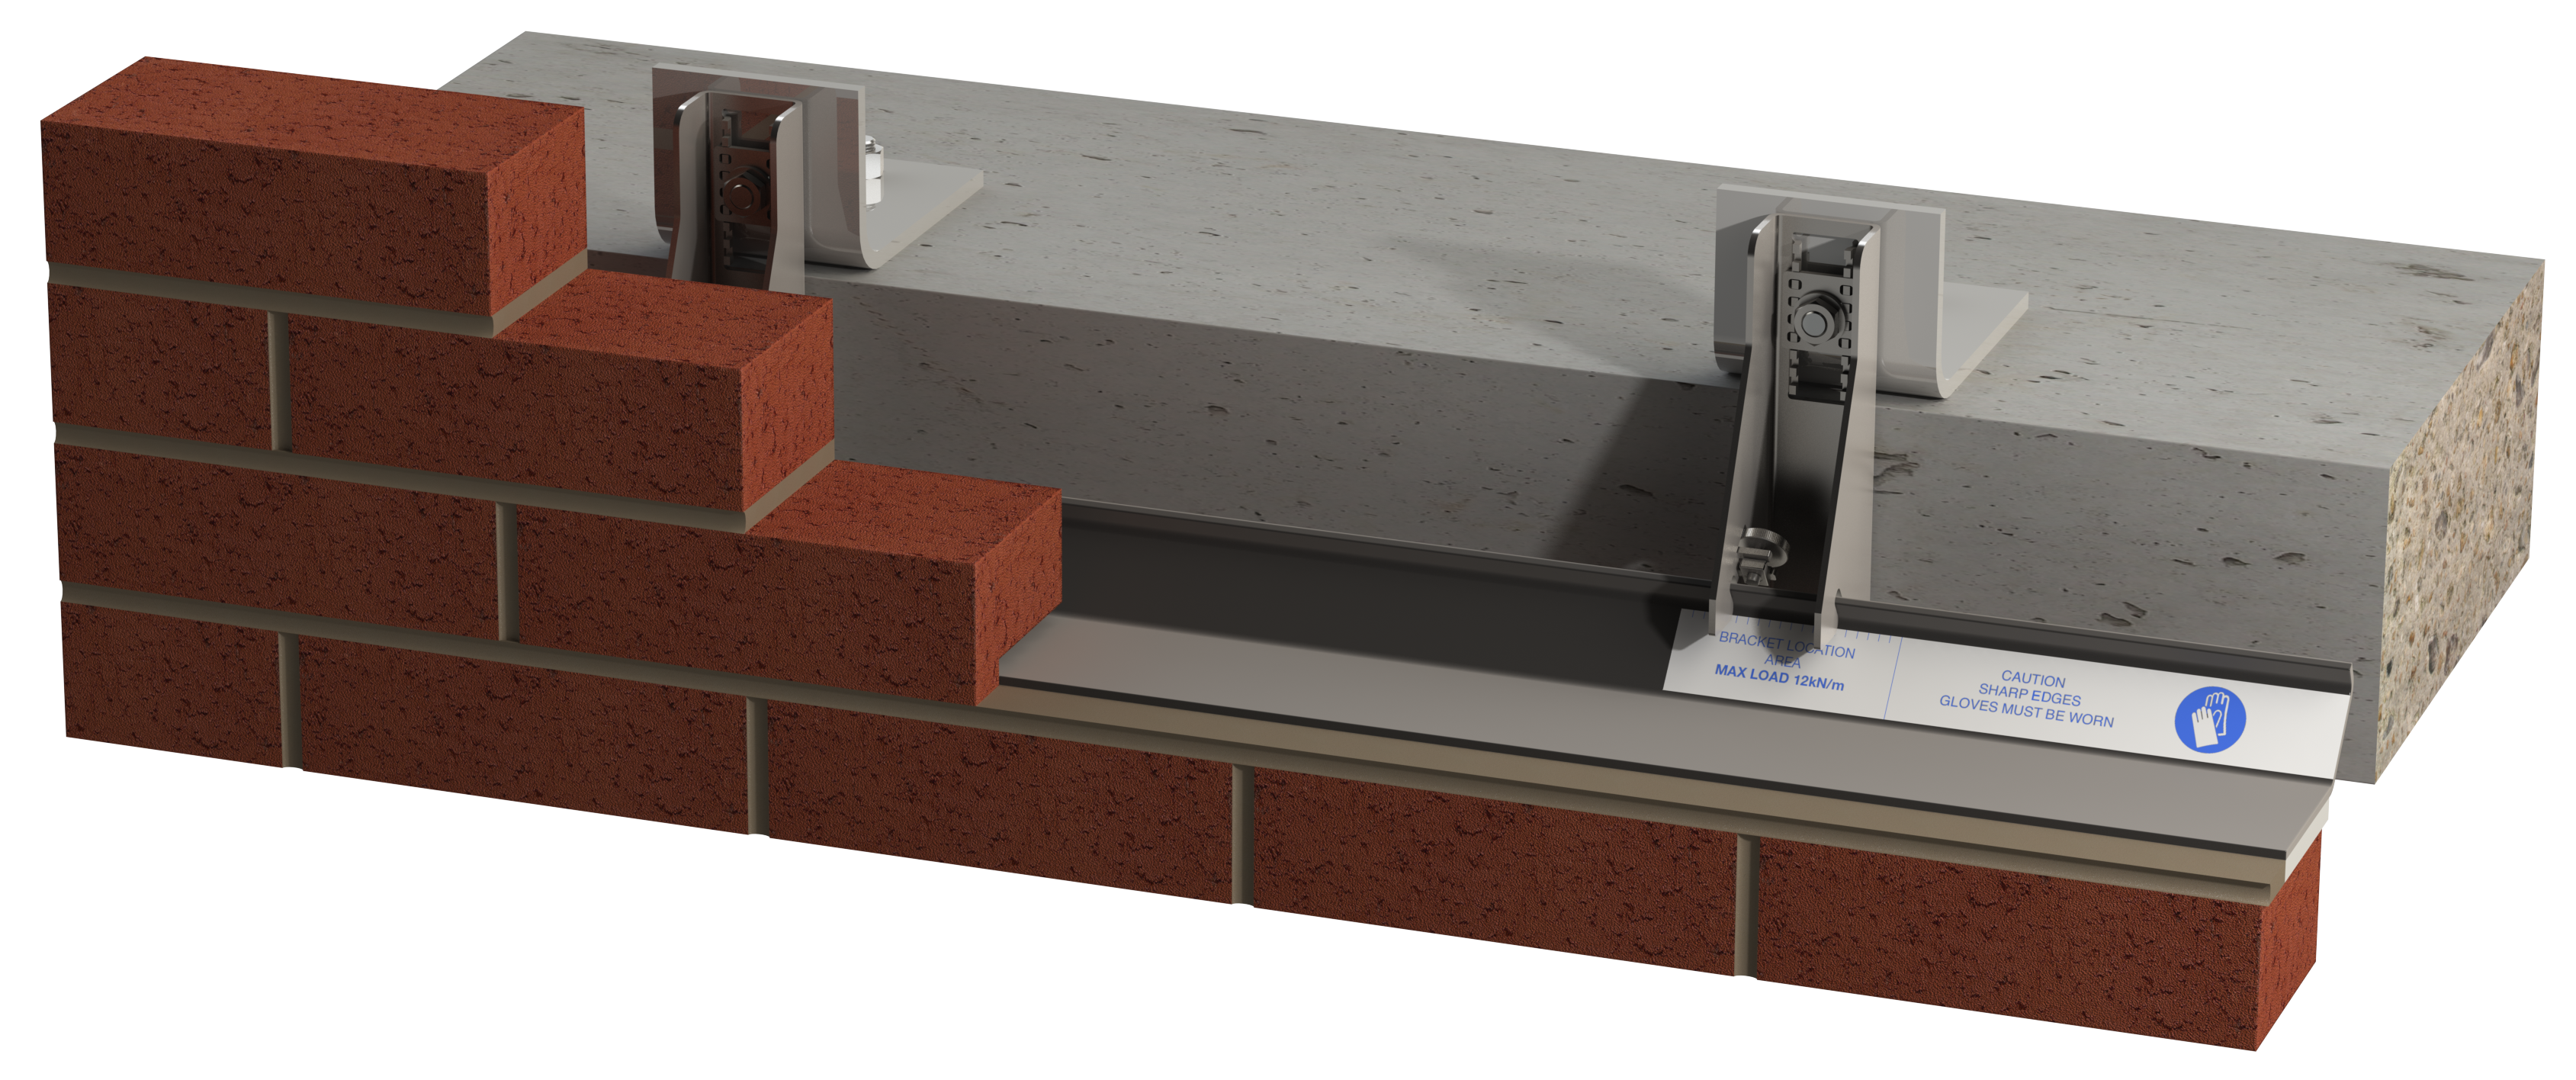 Image of Atlas 14+ masonry support with Alpha II washer